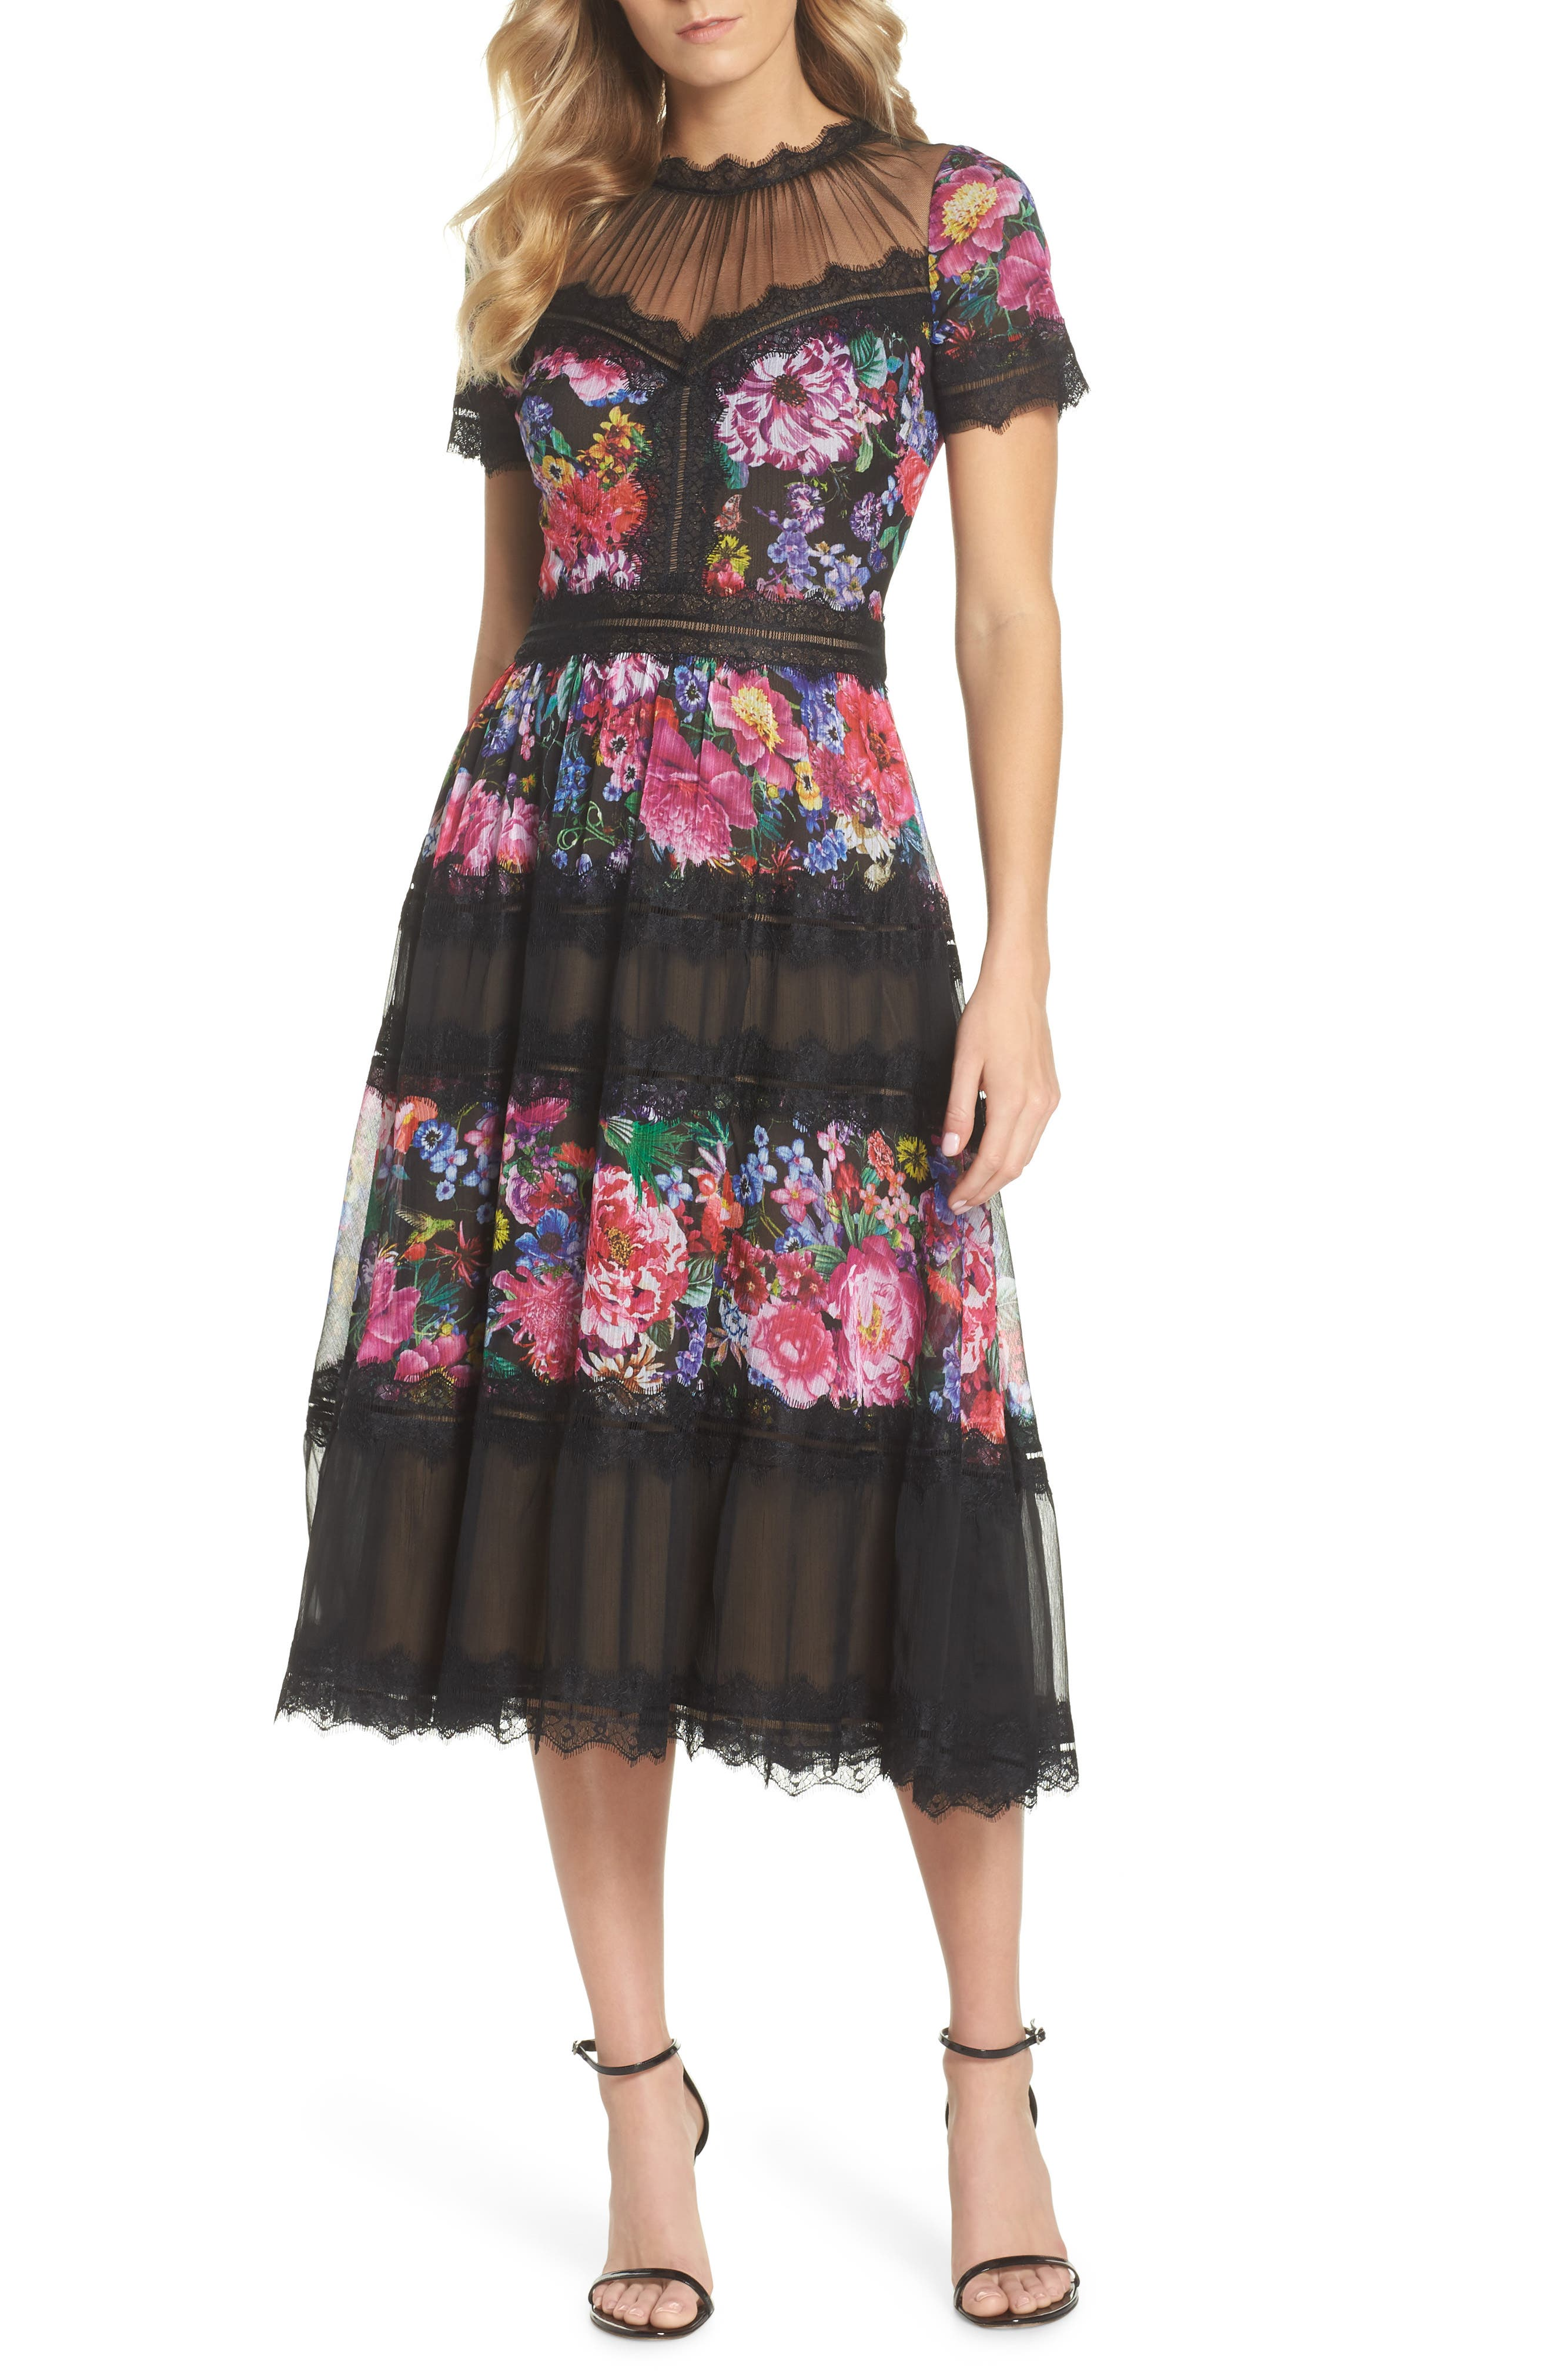 Lace Floral Midi Dress,                             Main thumbnail 1, color,                             Black/ Floral